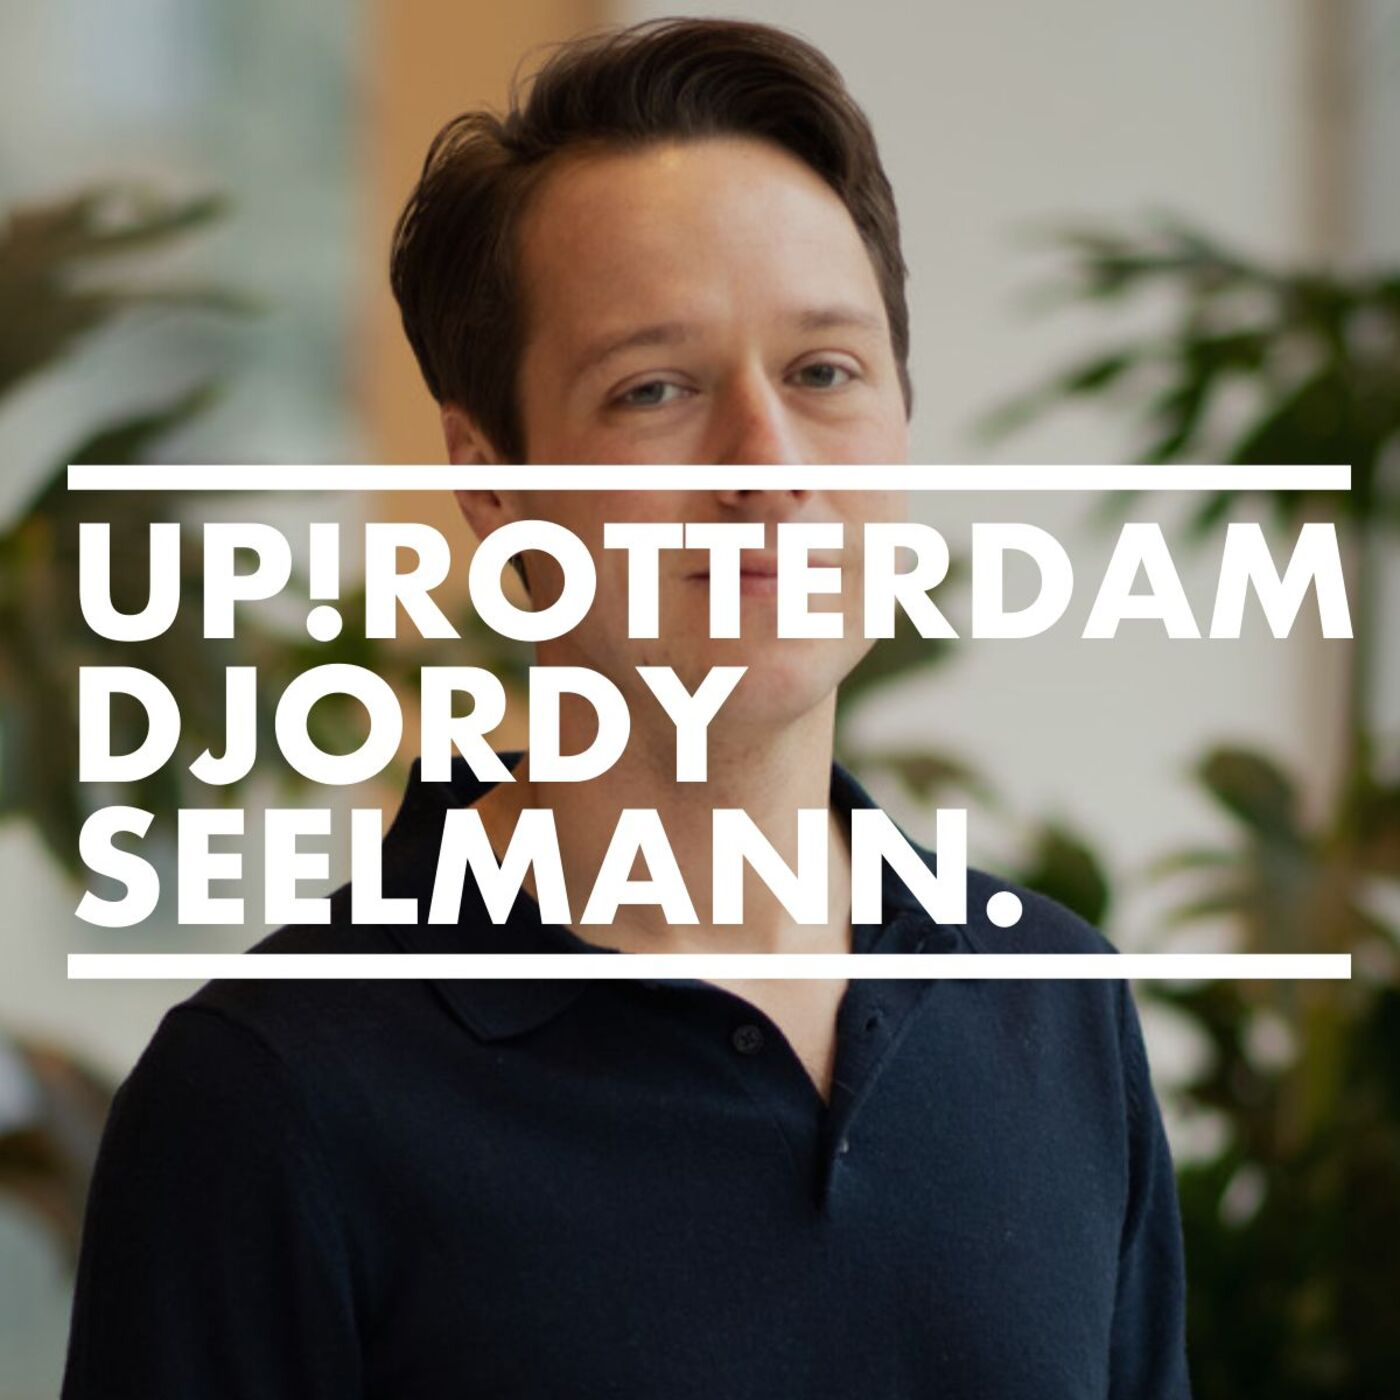 HousingAnywhere CEO Djordy Seelmann on acquisitions, dealing with investors, and fast decision-making.